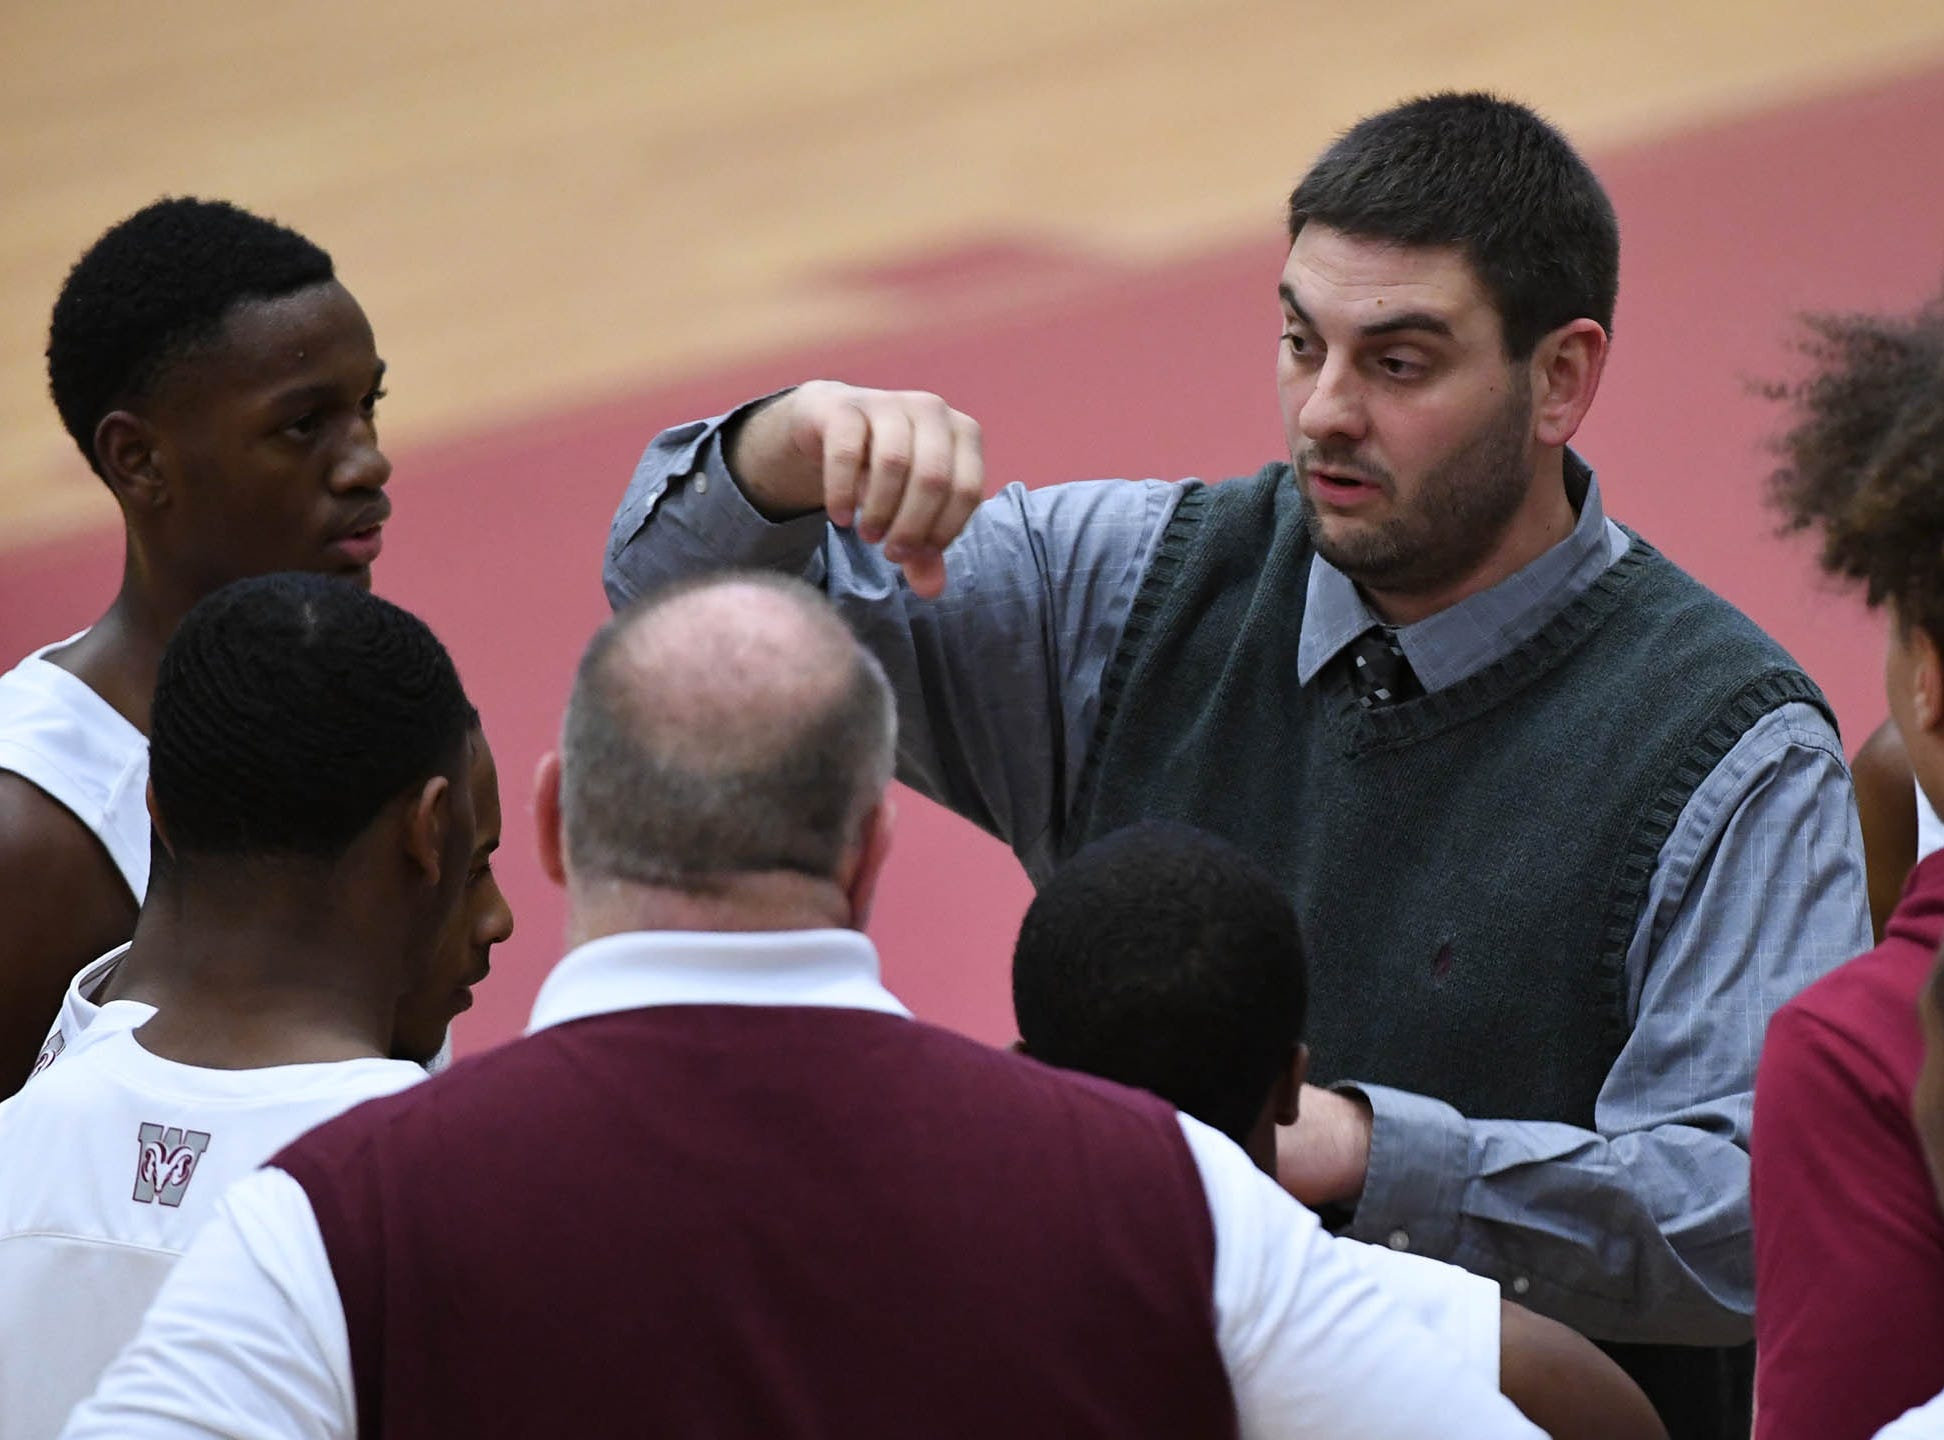 Westside coach Nick Agnello talks to players during the first quarter at Westside High School in Anderson on Tuesday.